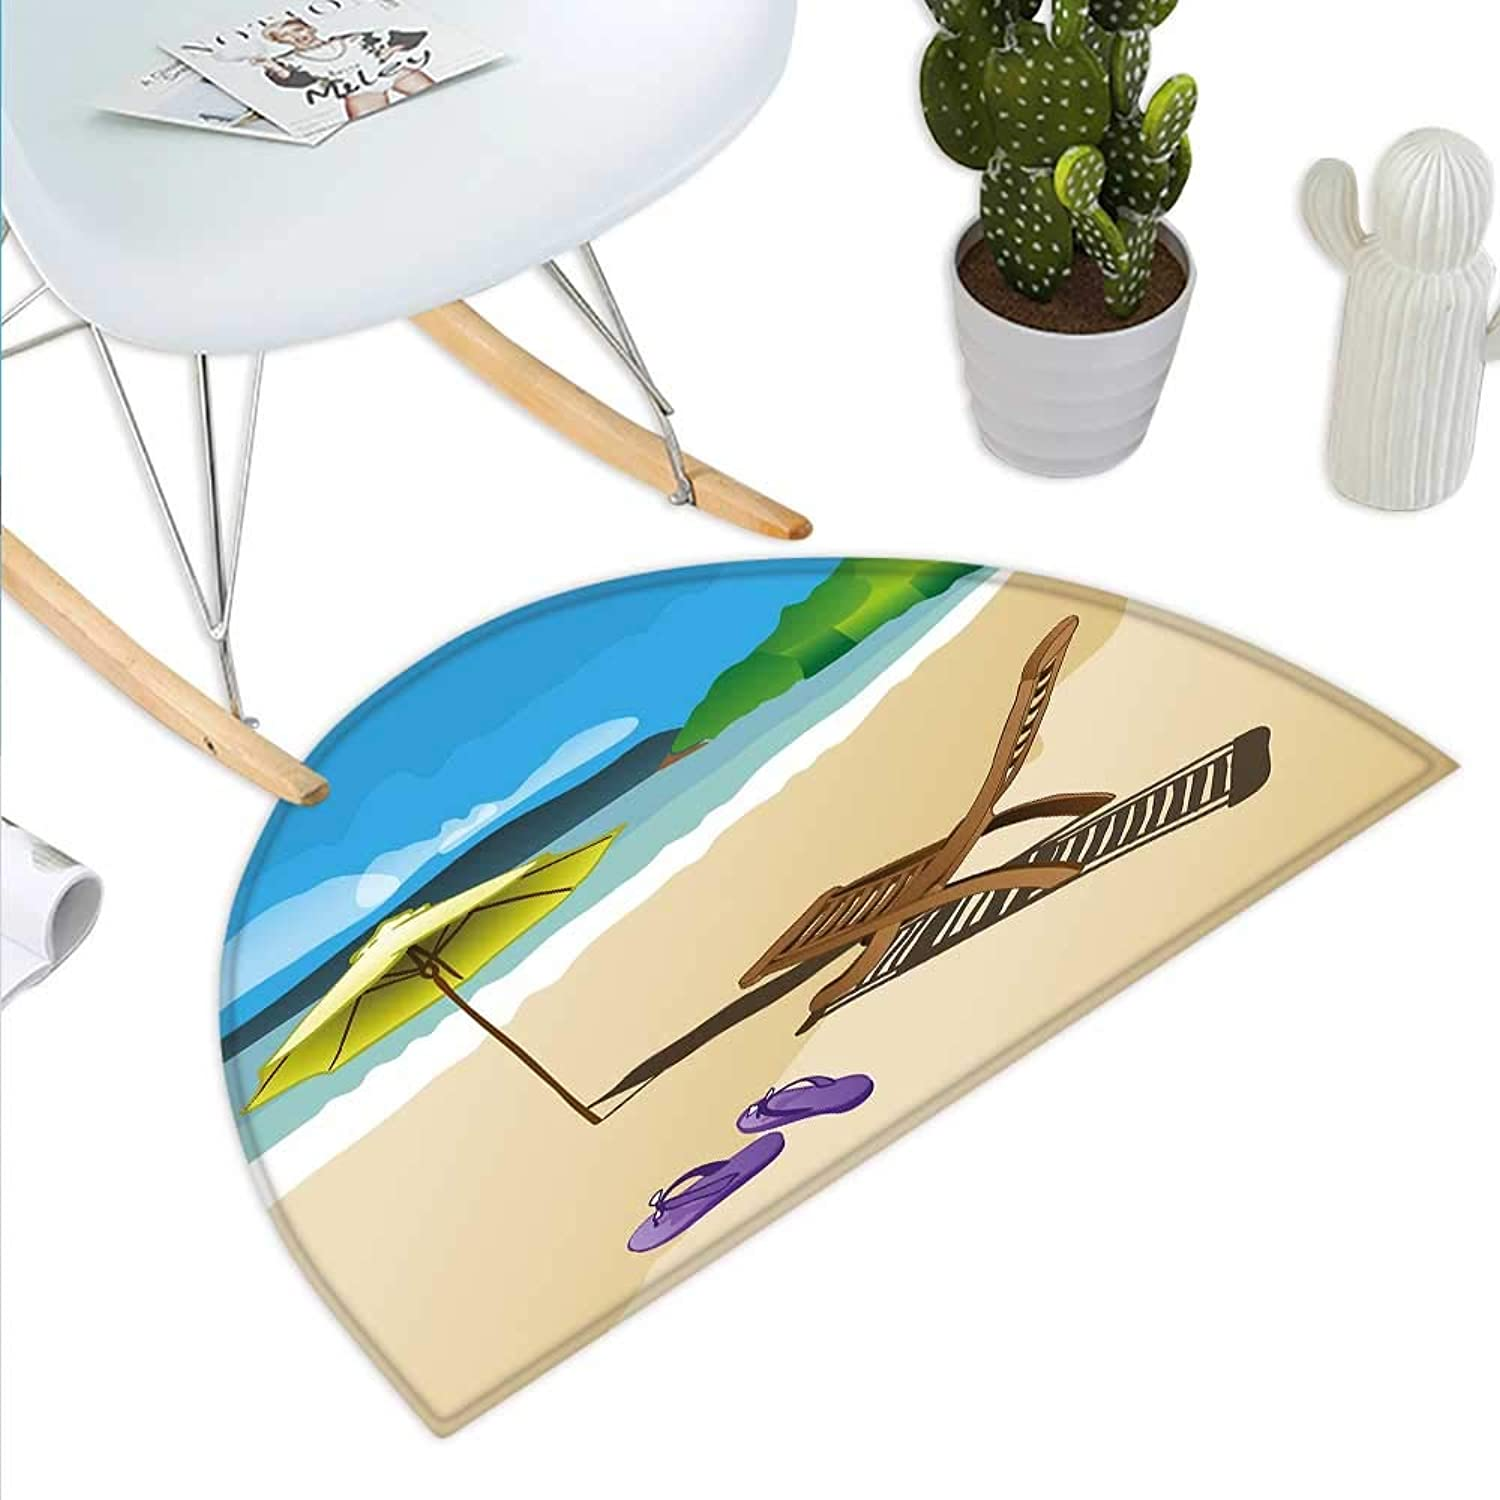 Summer Semicircle Doormat Beach Sunshine Sand Waves Sandal Deckchair Holiday Relaxation Vacation Cartoon Print Halfmoon doormats H 39.3  xD 59  Multicolor